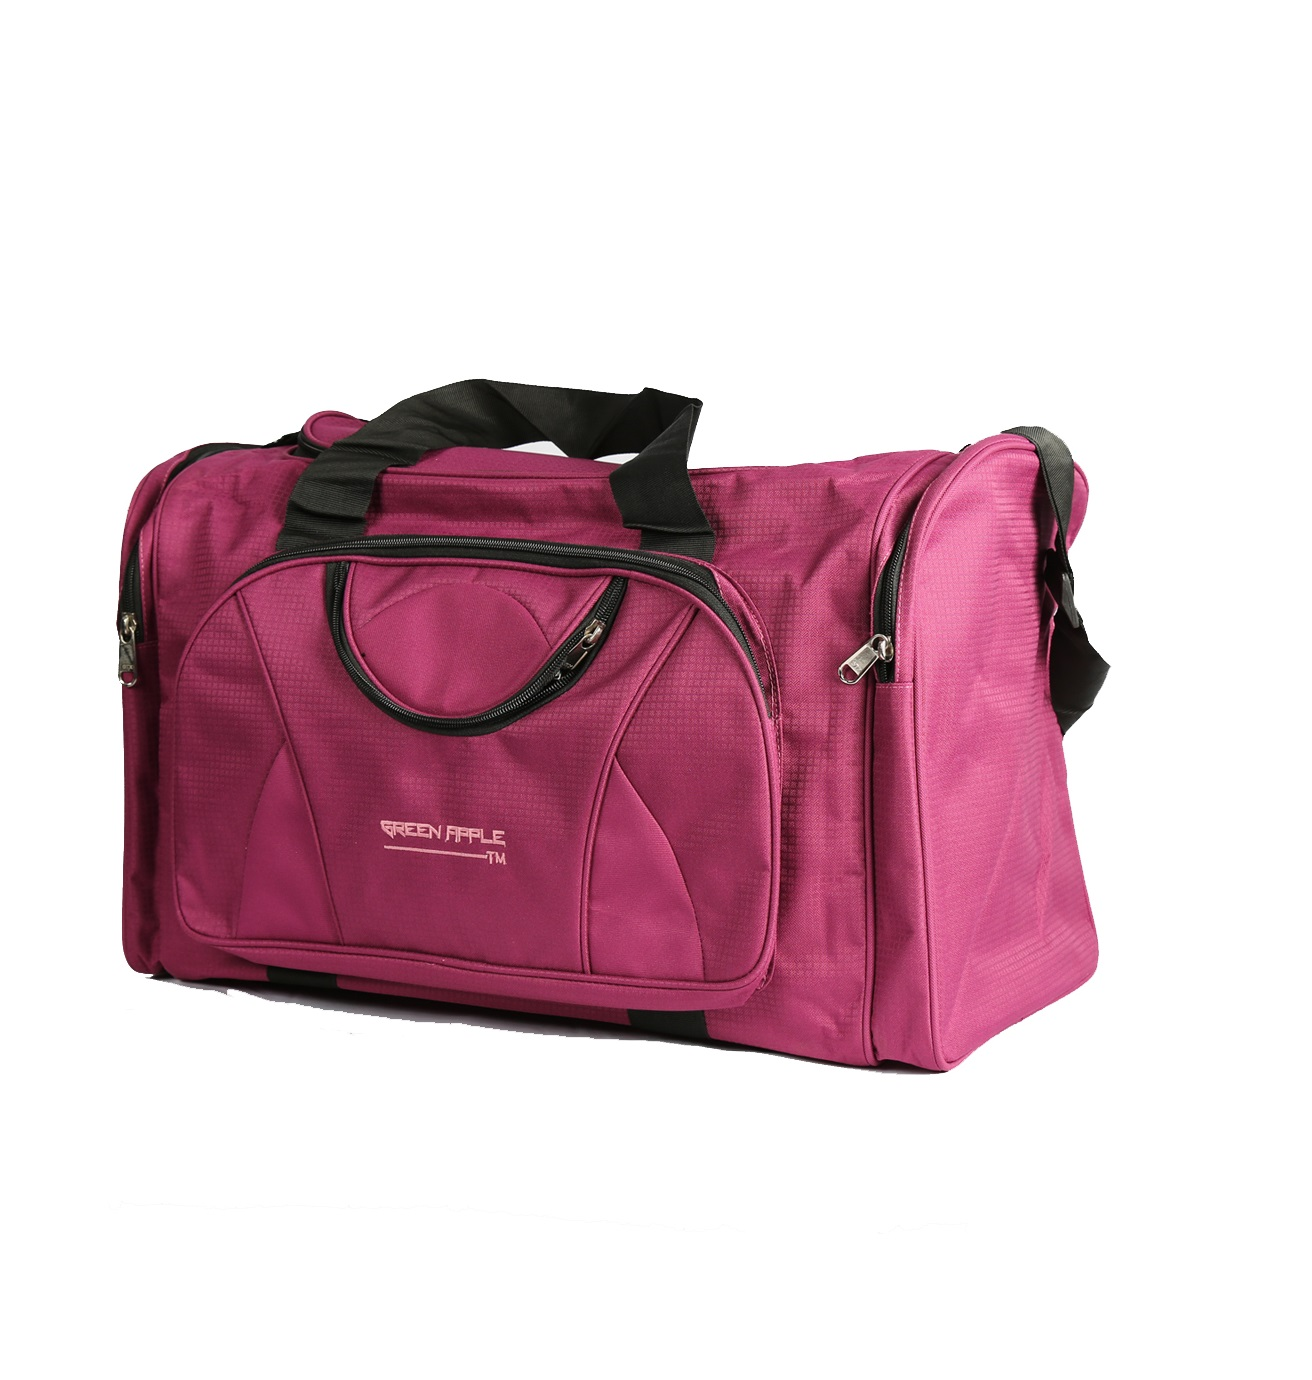 Fastrack bags for school - Home Products Ga 2007 Duffle Bag